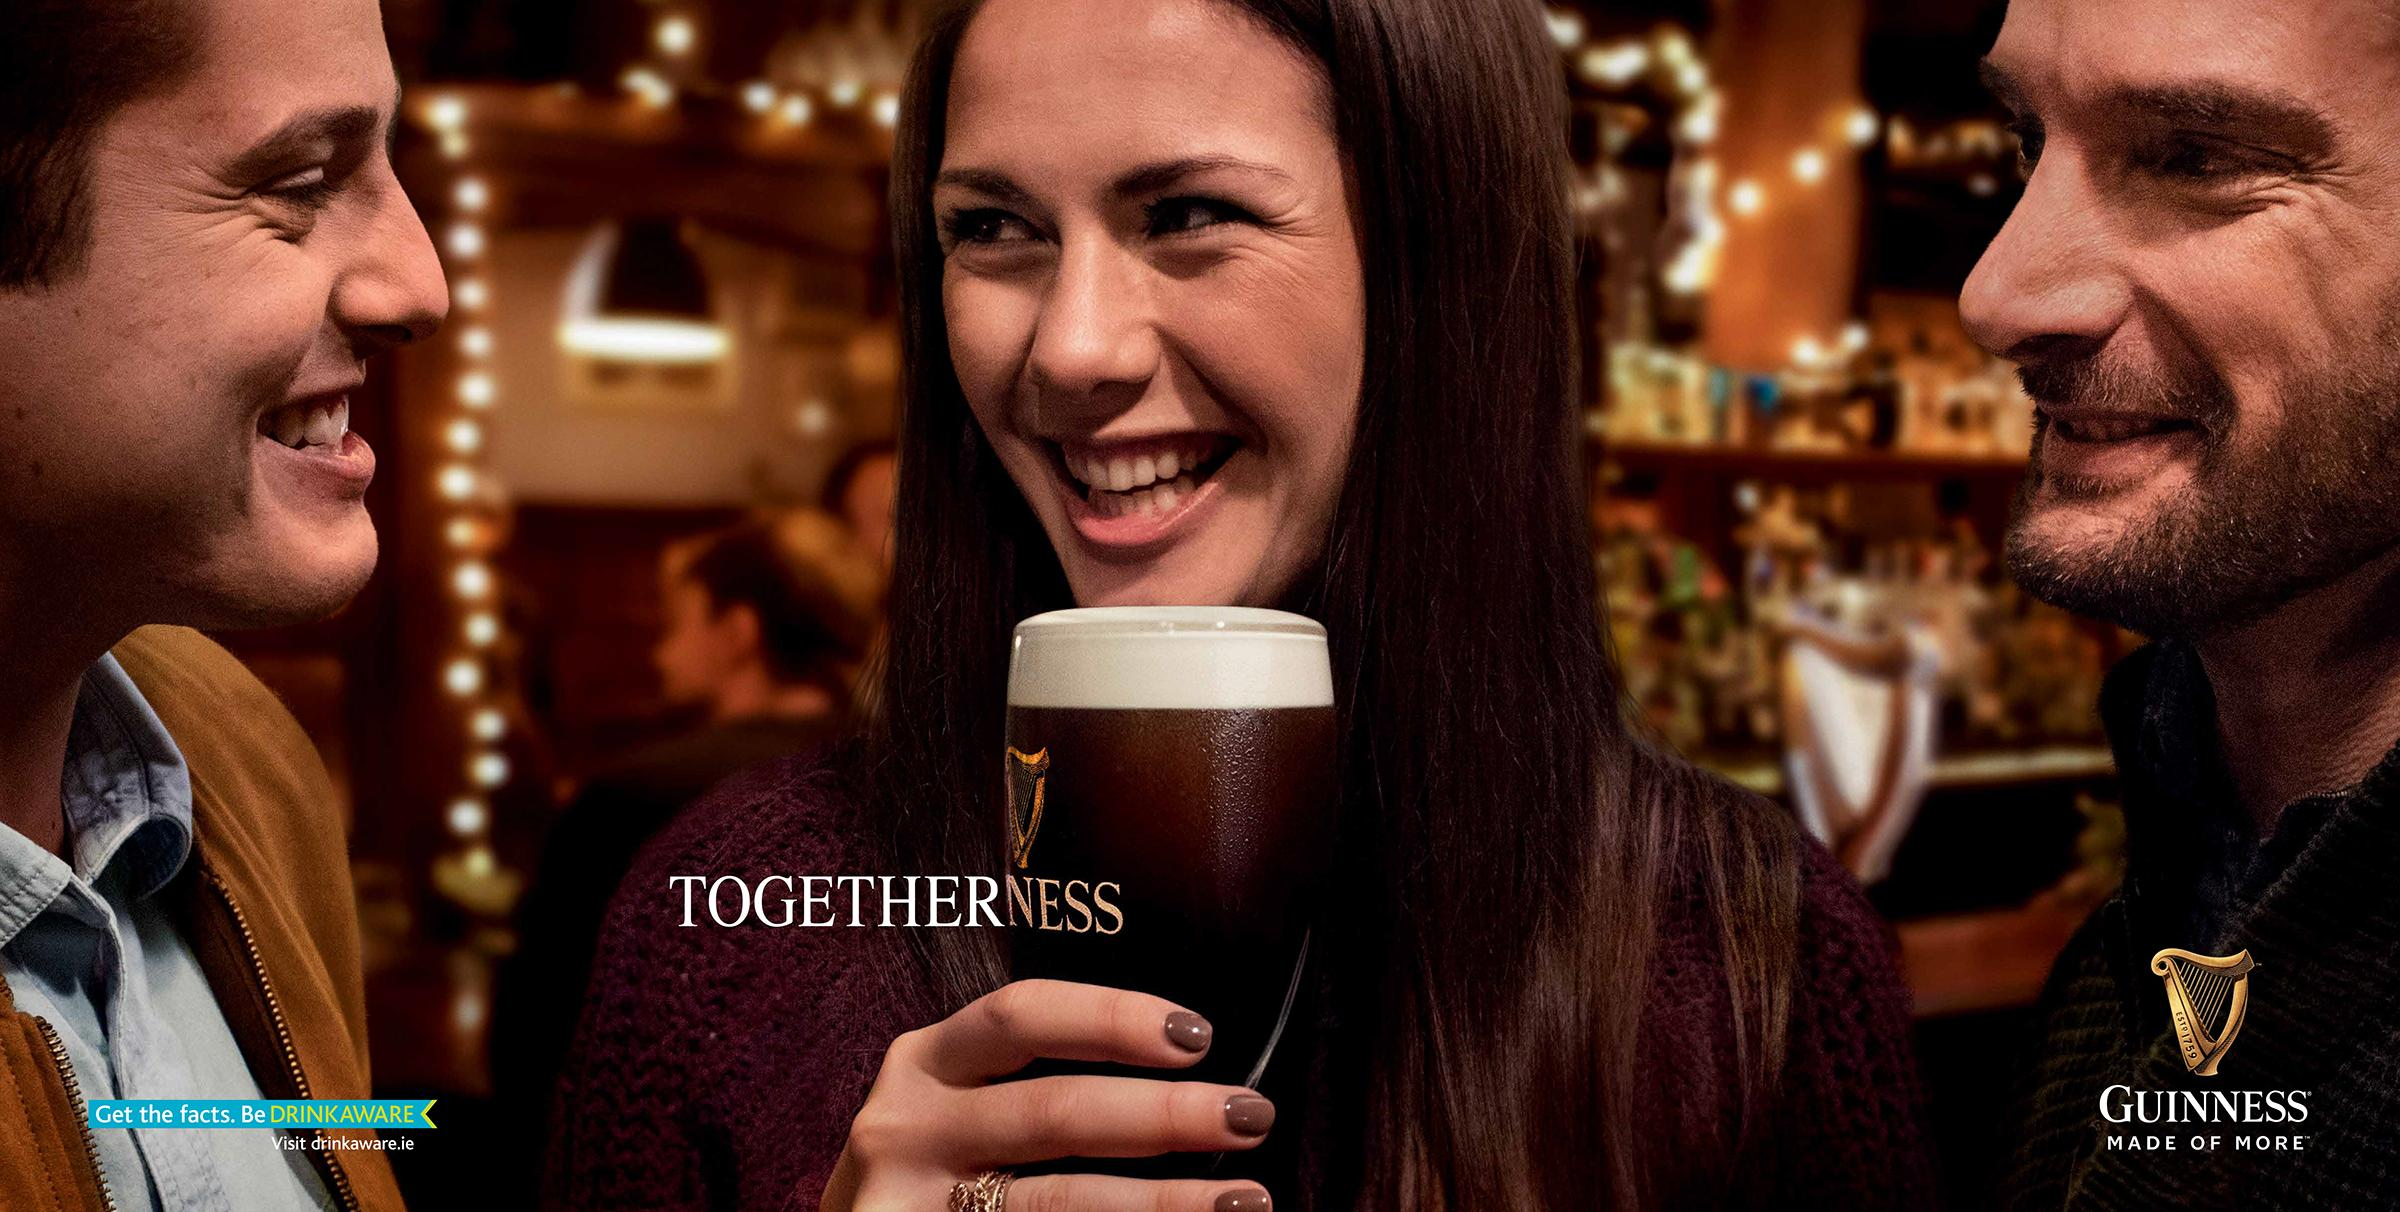 Guinness Print Ad - Togetherness